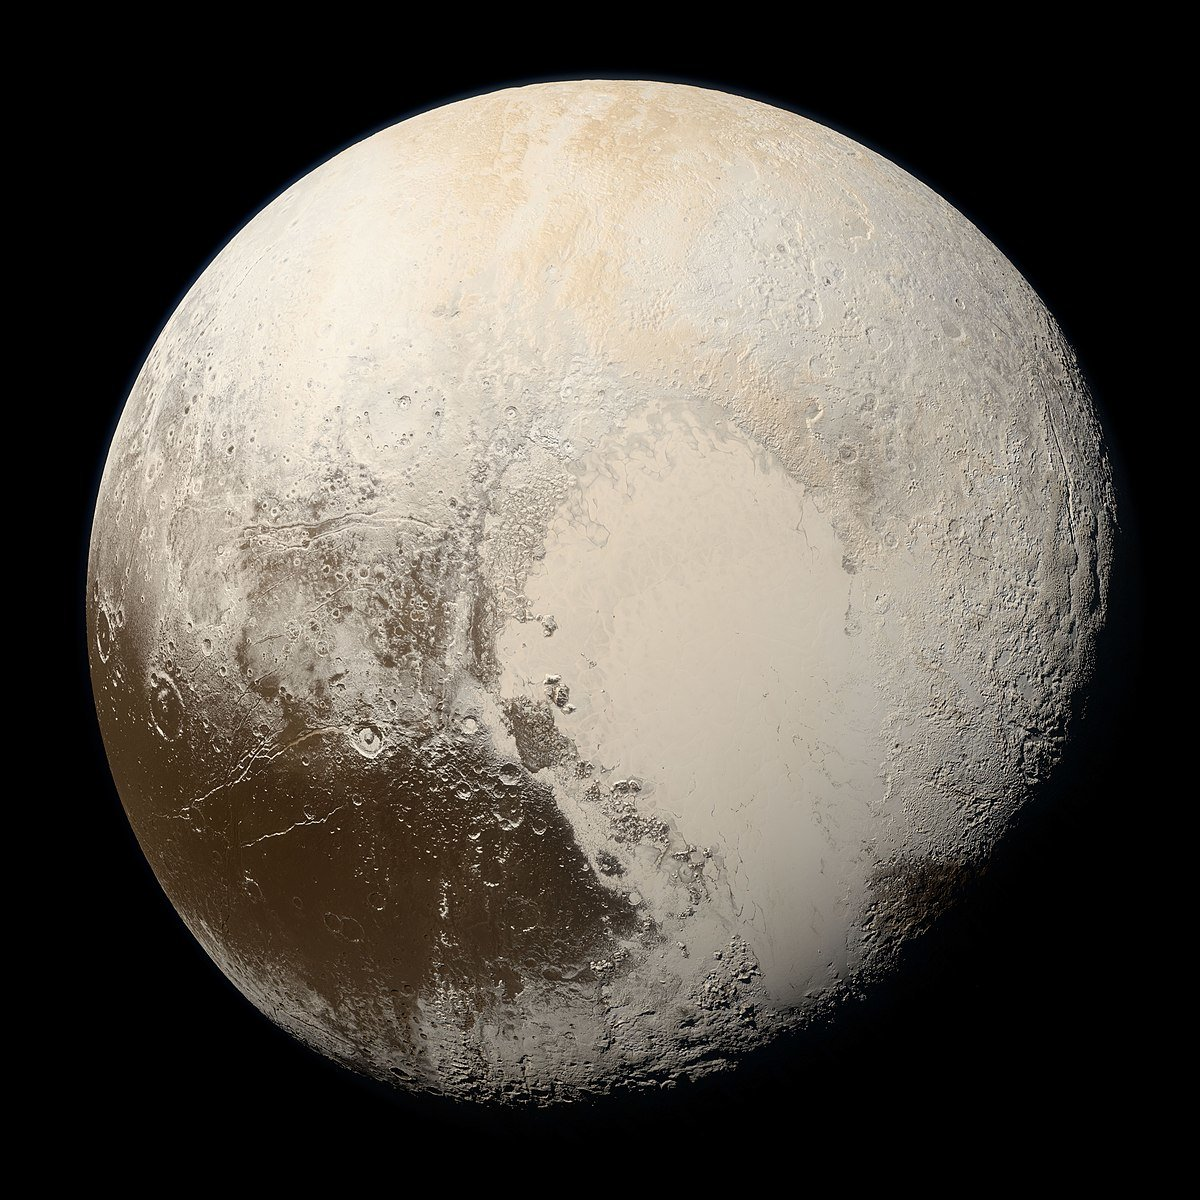 In 1930, Las Cruces and NMSU legend Clyde Tombaugh discovered Pluto, which was designated as the ninth and most distant planet in our solar system.